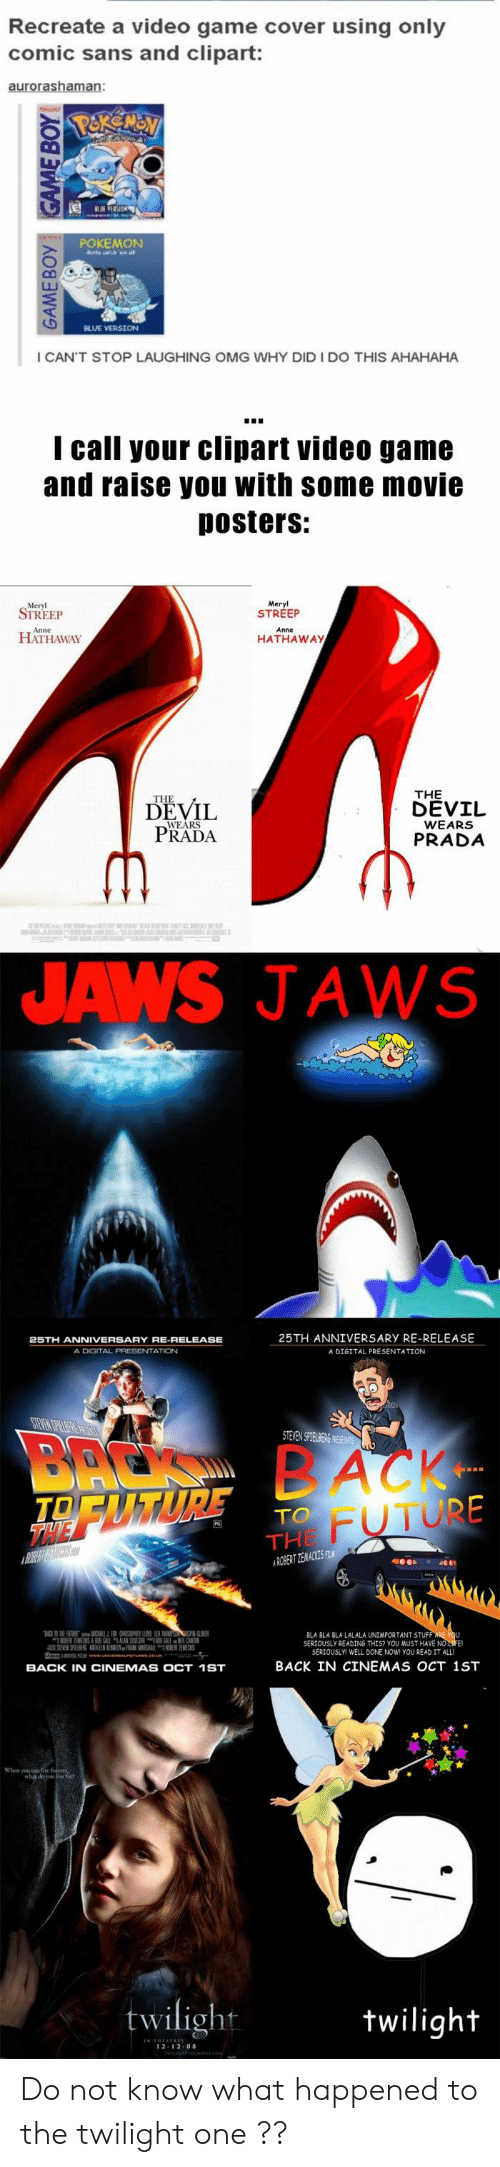 Future, Omg, and Pokemon: Recreate a video game cover using only  comic sans and clipart:  POKEMON  I CAN'T STOP LAUGHING OMG WHY DID I DO THIS AHAHAHA  I call your clipart video game  and raise you with some movie  Dosters:  Meryl  STREEP  STREEP  HATHAWAY  HATHAWAy  THE  DEVIL  DEVİL  PRADA  WEARS  PRADA  JAWS JAWS  25TH ANNIVERSARY RE-RELEASE  A DIGITAL PRESENTATION  A DIGITAL PRESENTATION  STEVENS TEABi  FUTURE  TO  THE  益NER  BLA BLA BLA LALALA UNİMPORTANT STUF  SERJOUSLY READING THES? YOU MUST HAVE NO  SERIOUSLY WELL DONE NOW YOU READ IT ALL  BACK IN CINEMAS OCT 1ST  BACK IN CINEMAS OCT 1ST  twilight  wiligh  2 12 0 Do not know what happened to the twilight one ??